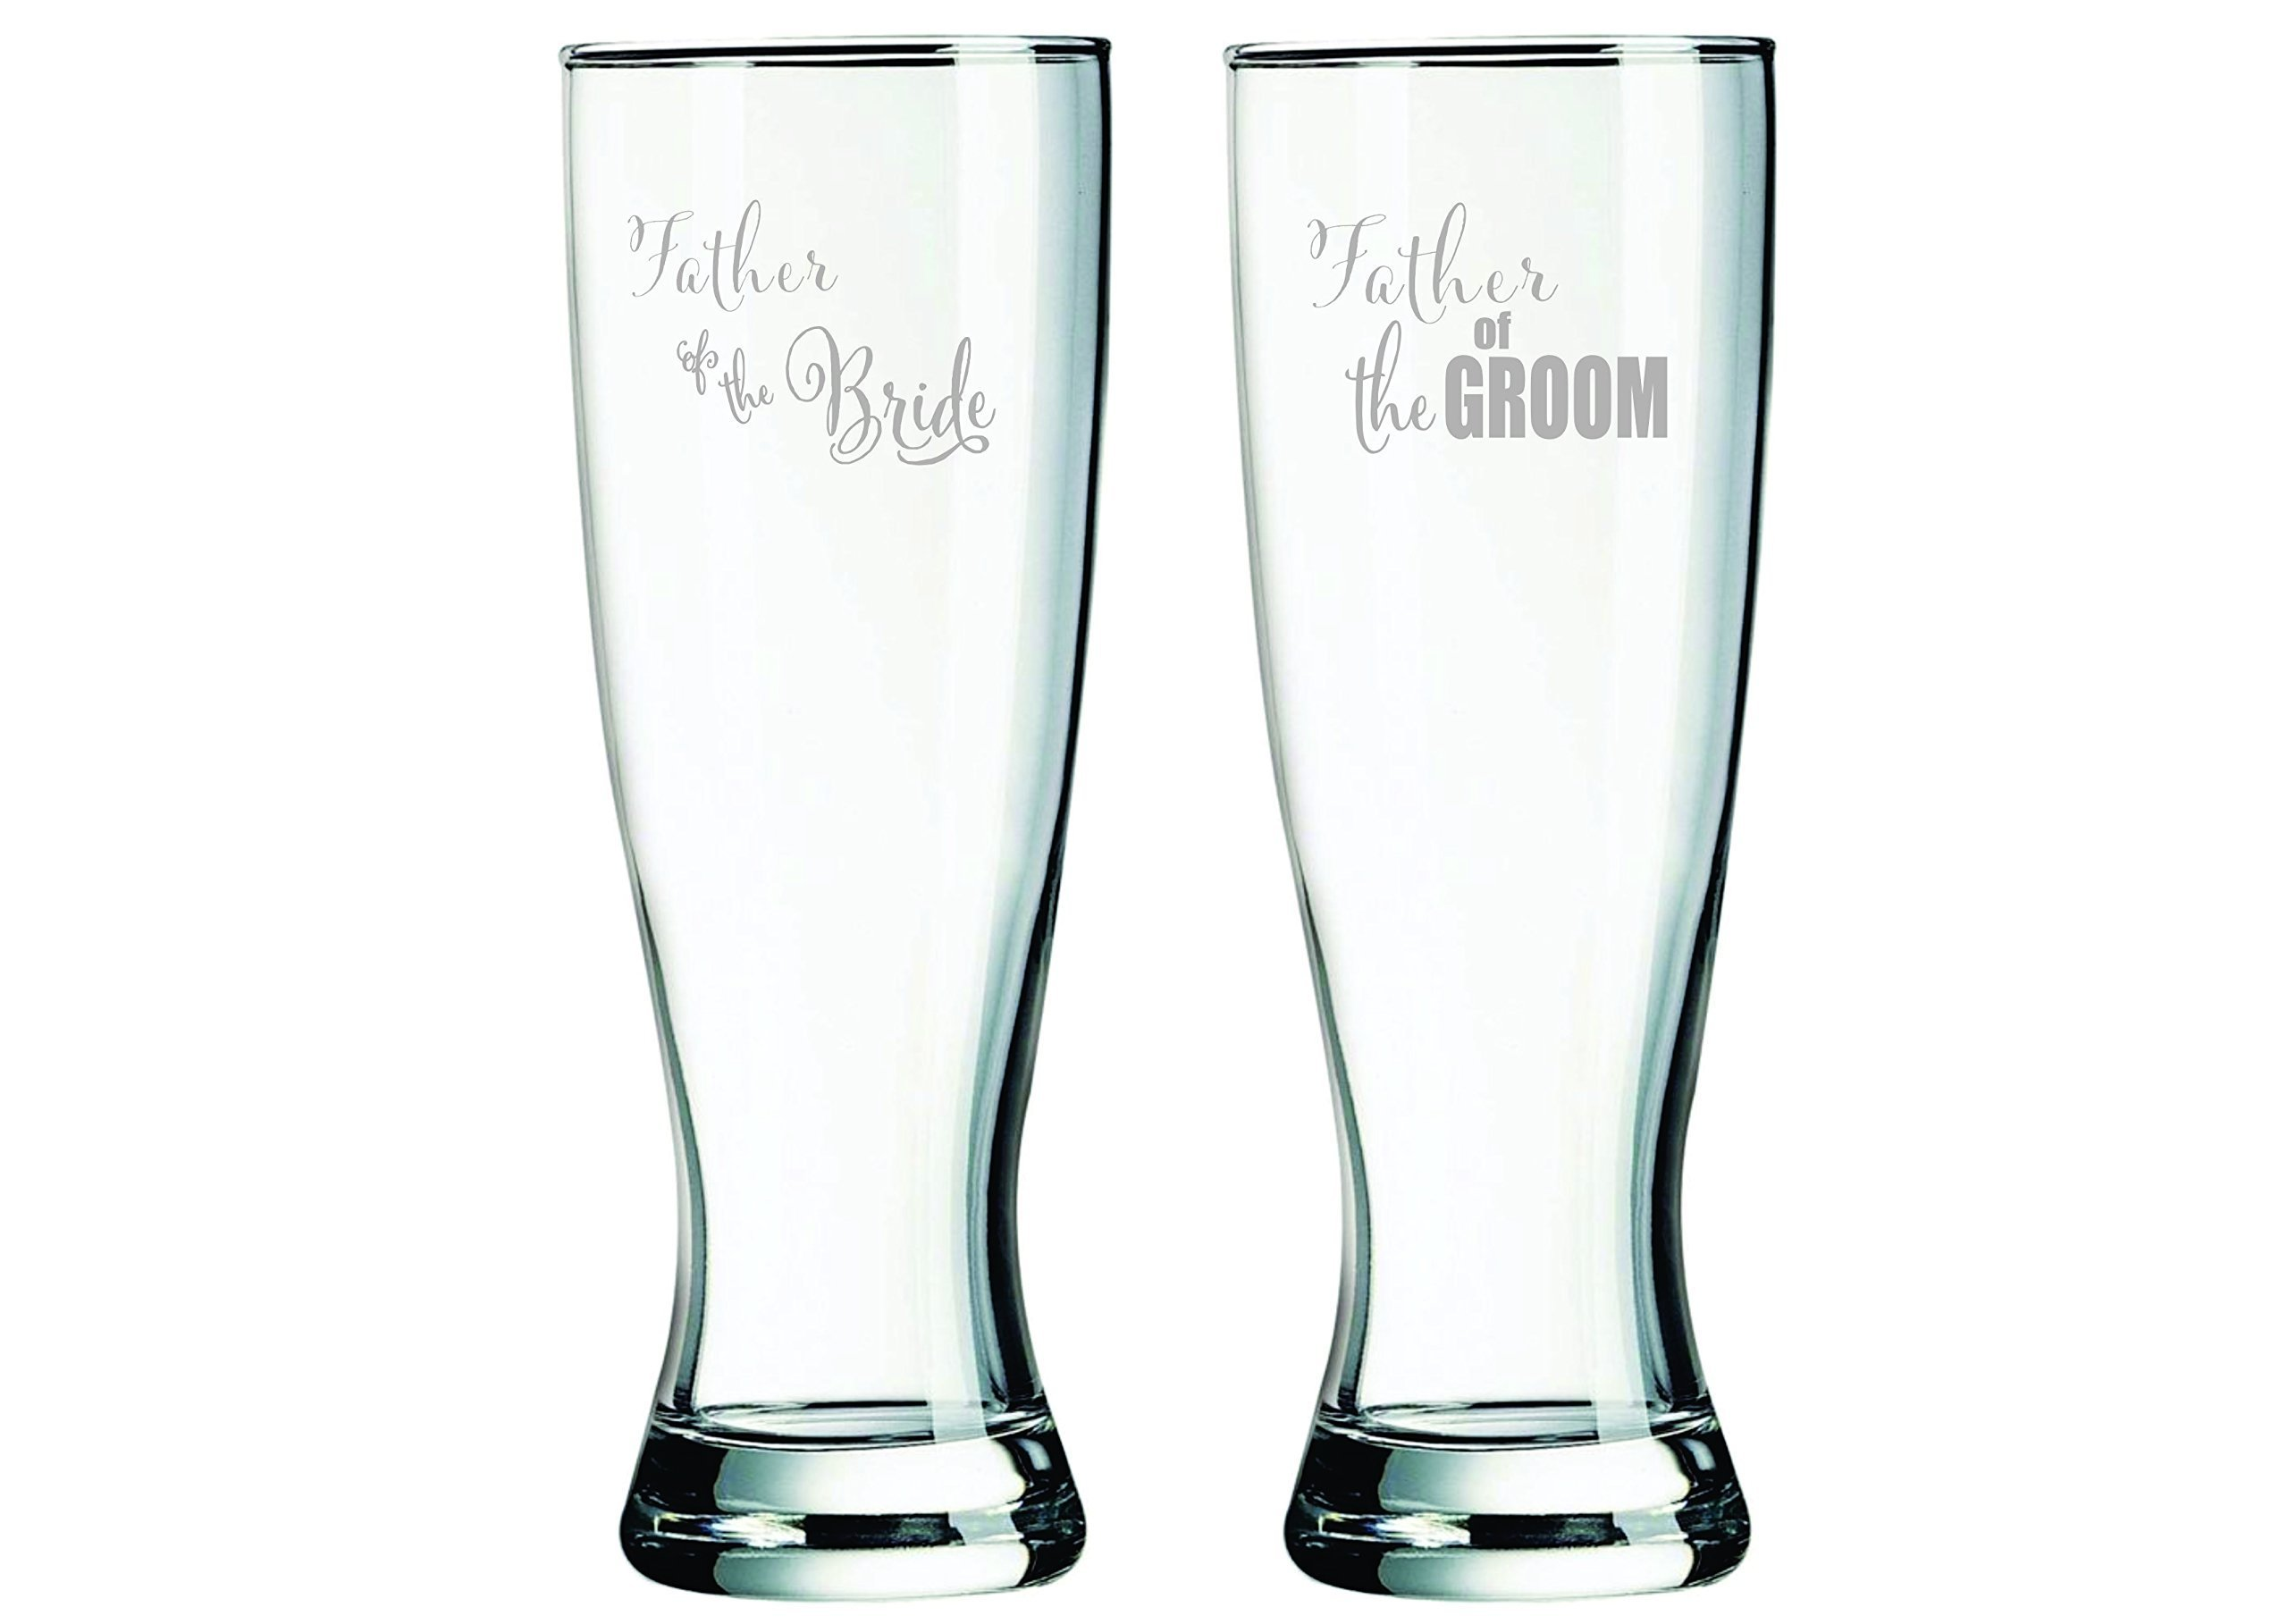 23 oz. Father of the Groom and Father of the Bride Pilsner glass set